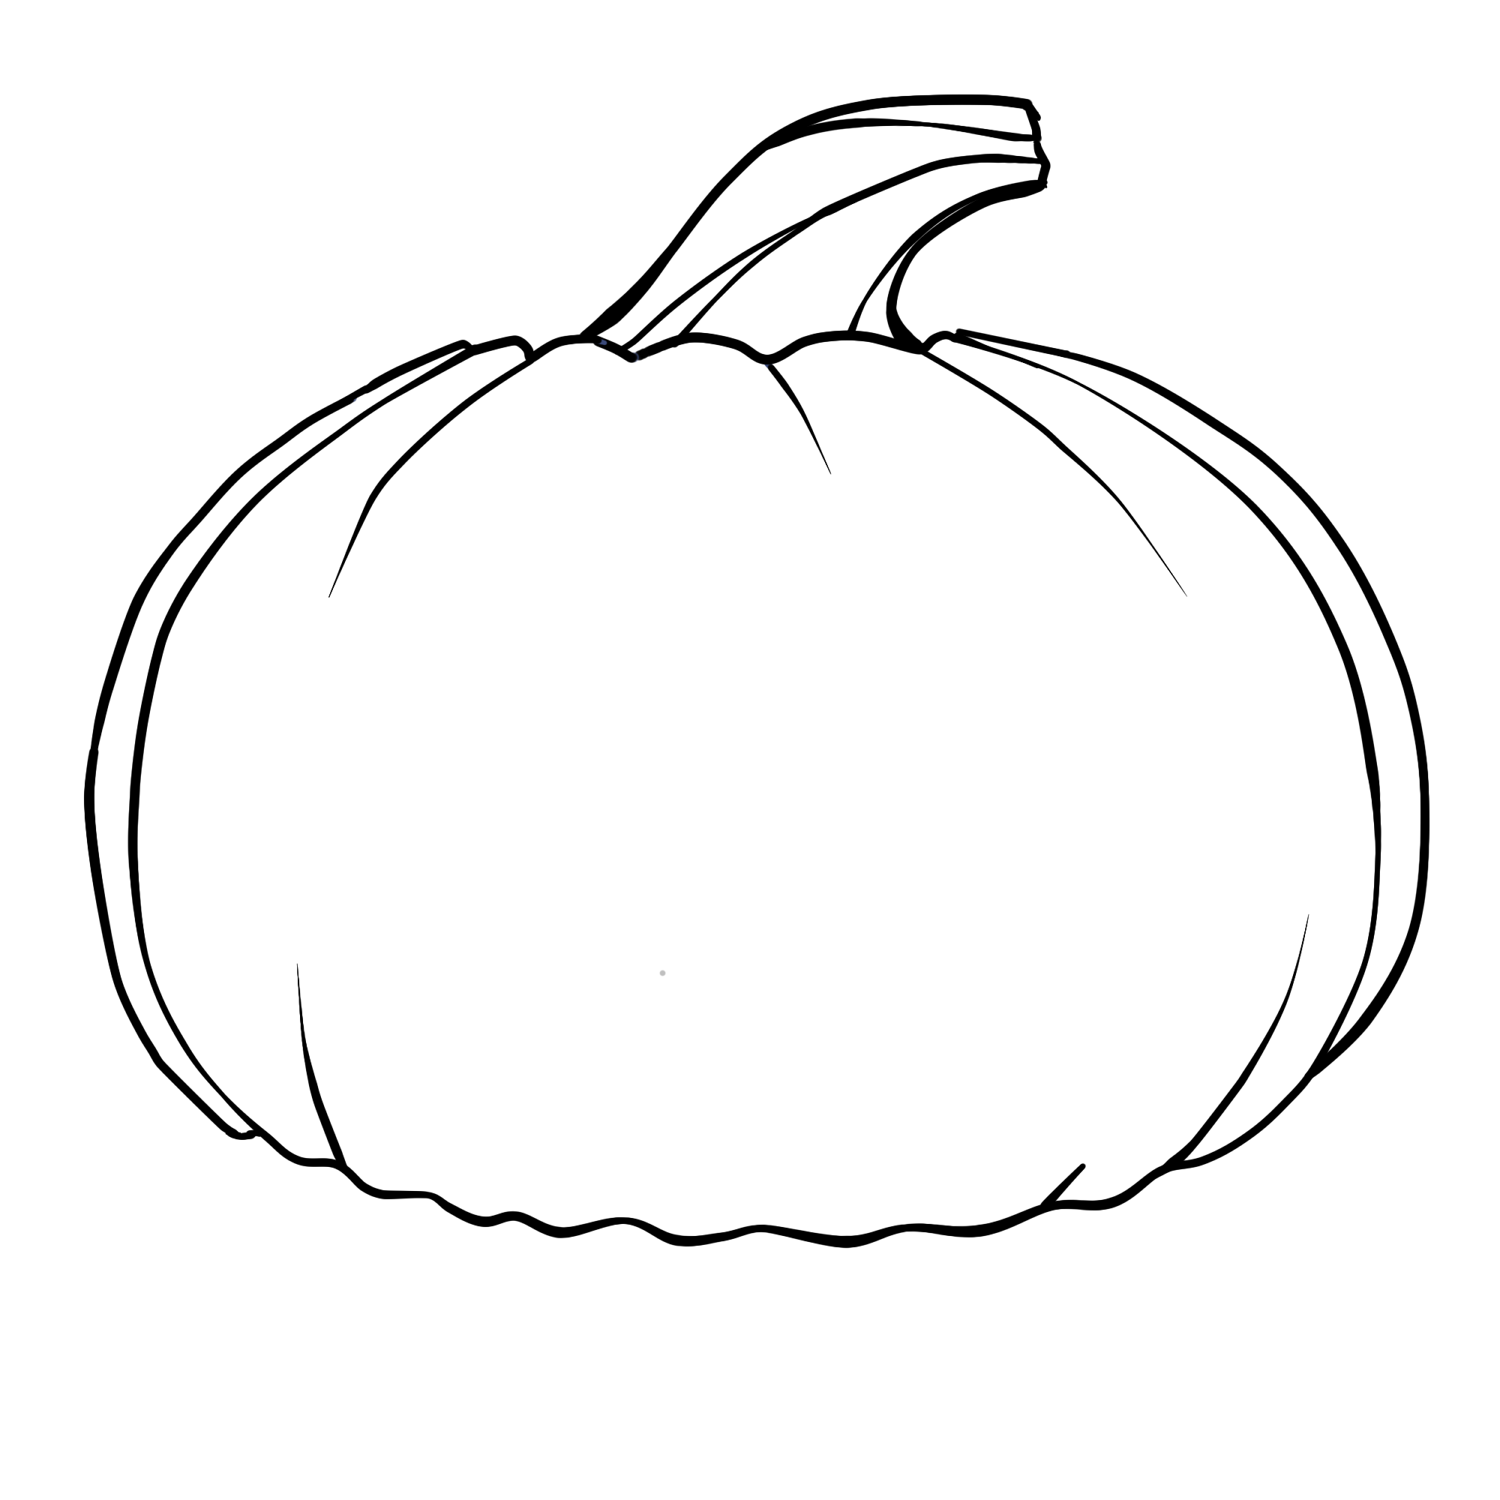 11 pumpkin drawing free cliparts that you can download to you computer ...